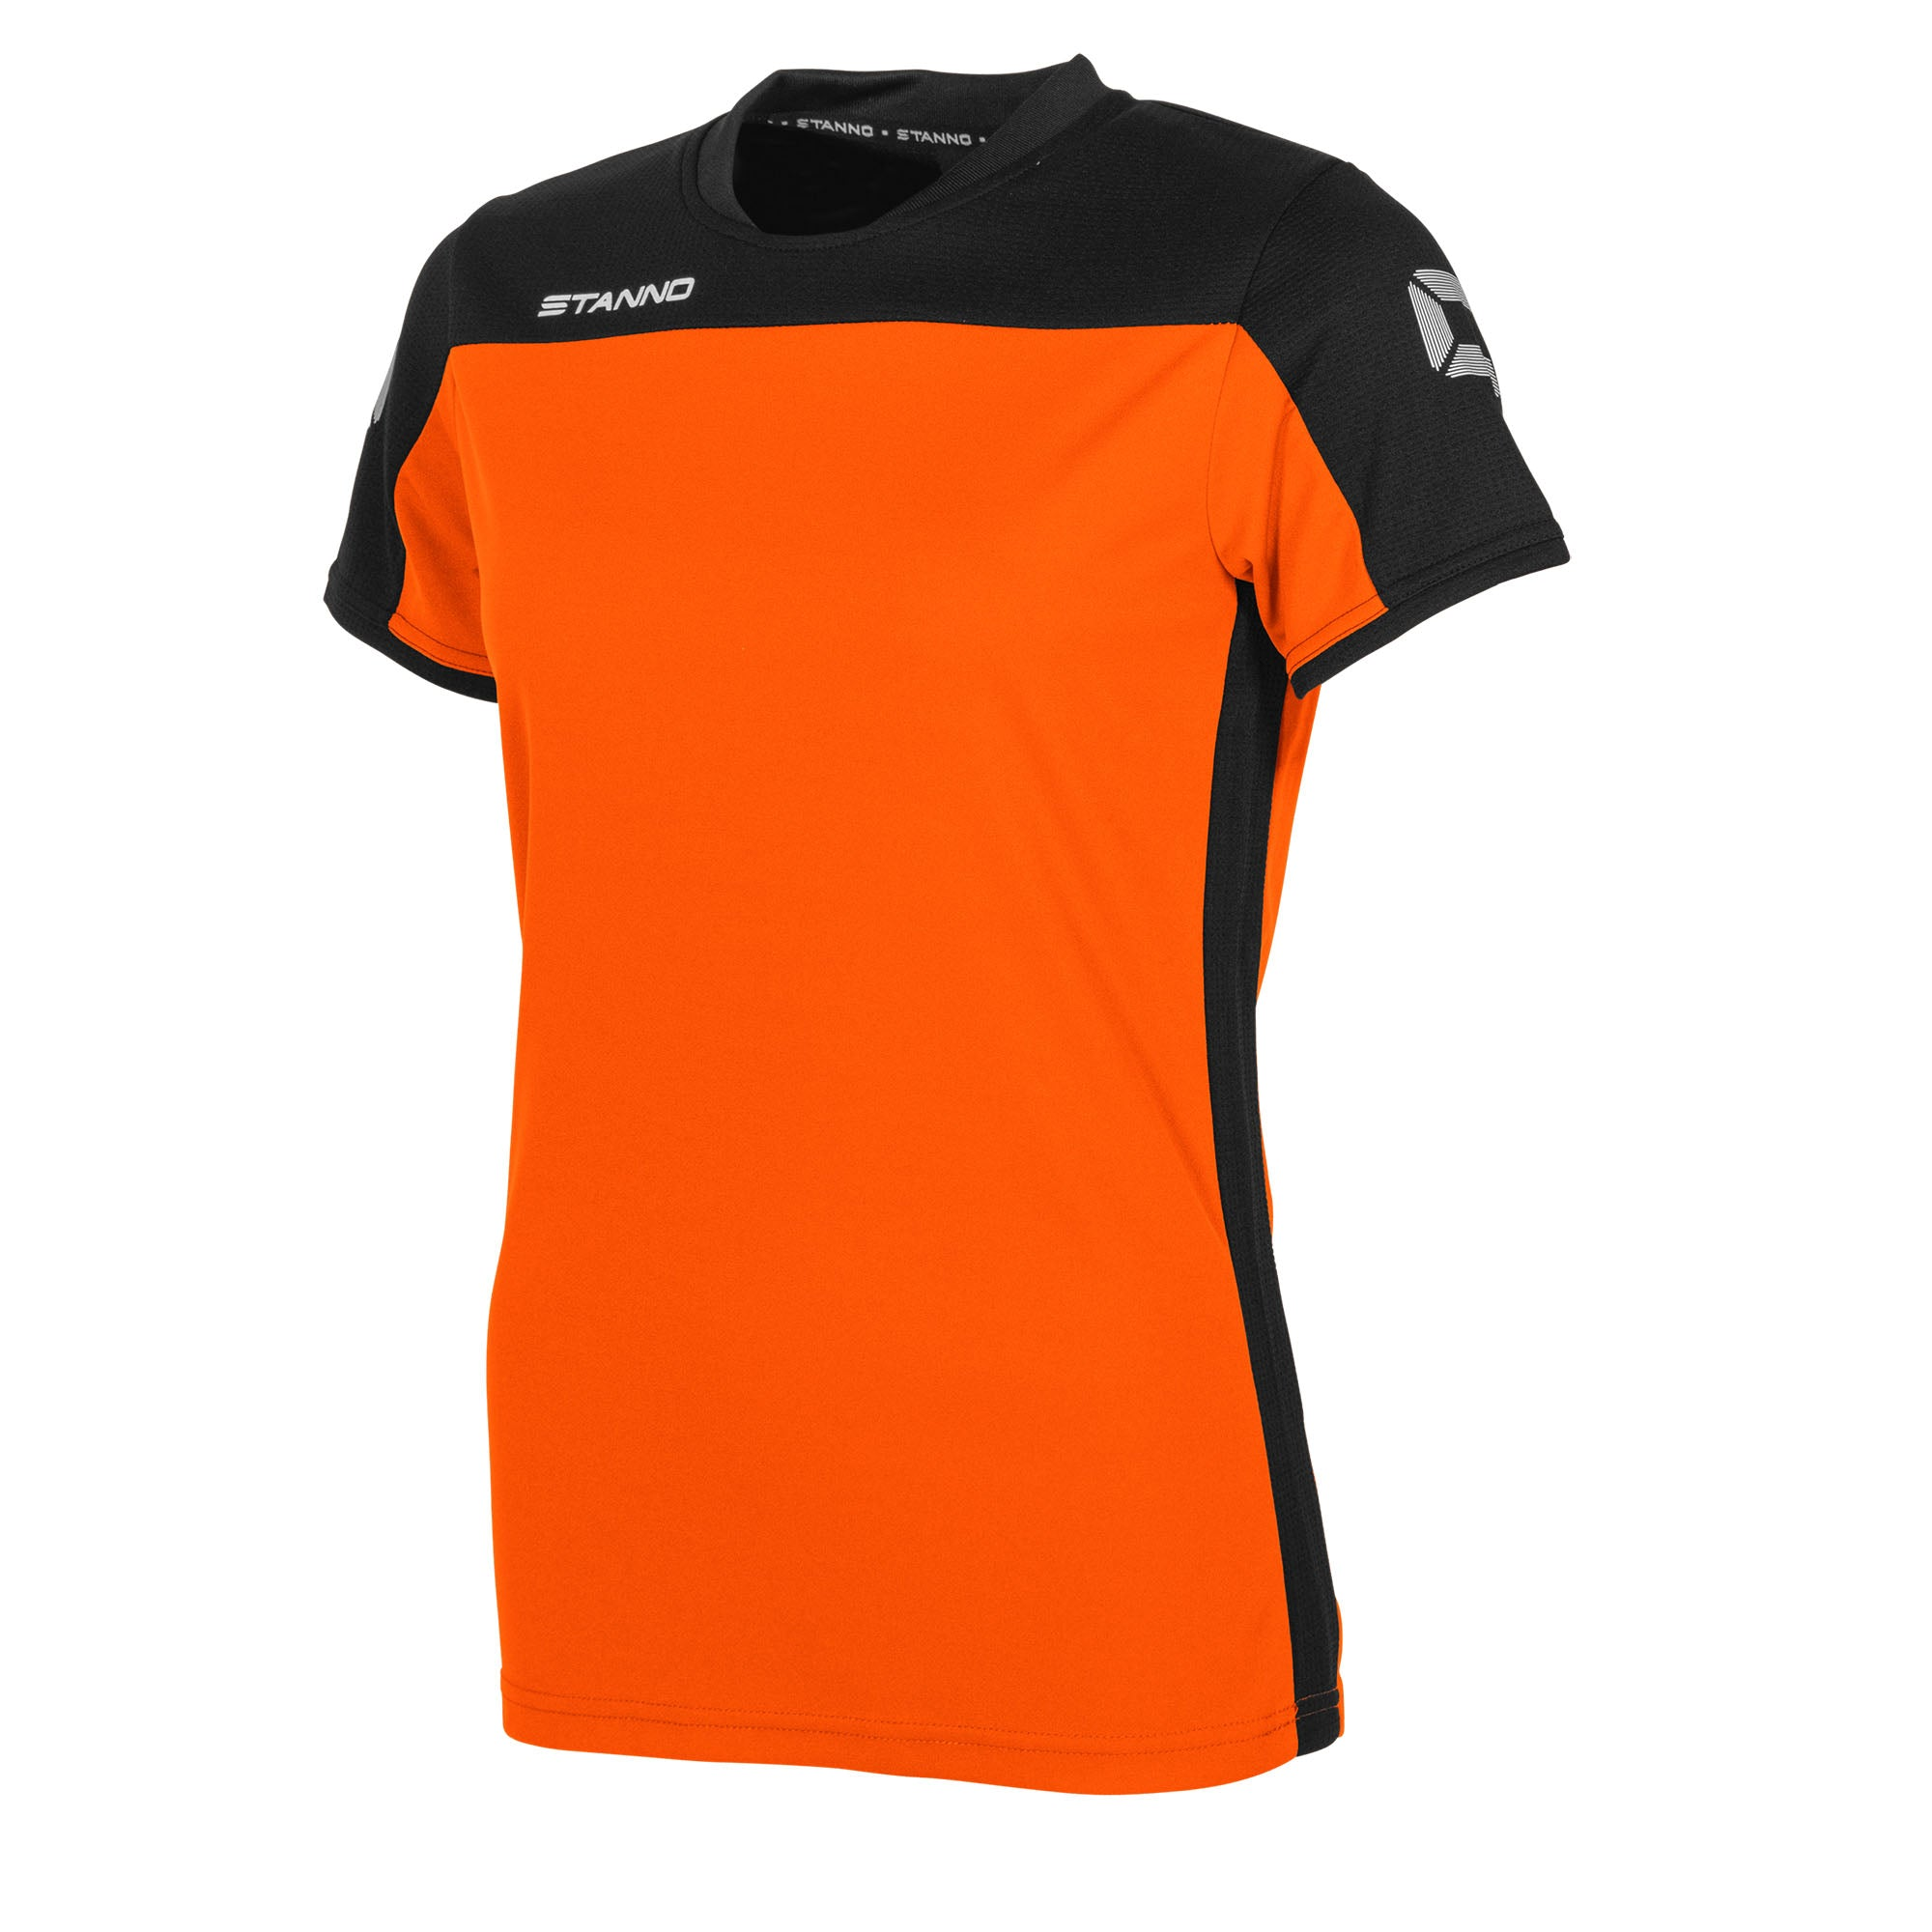 Stanno Pride ladies t-shirt in orange, with mesh contrast black shoulder and side panel